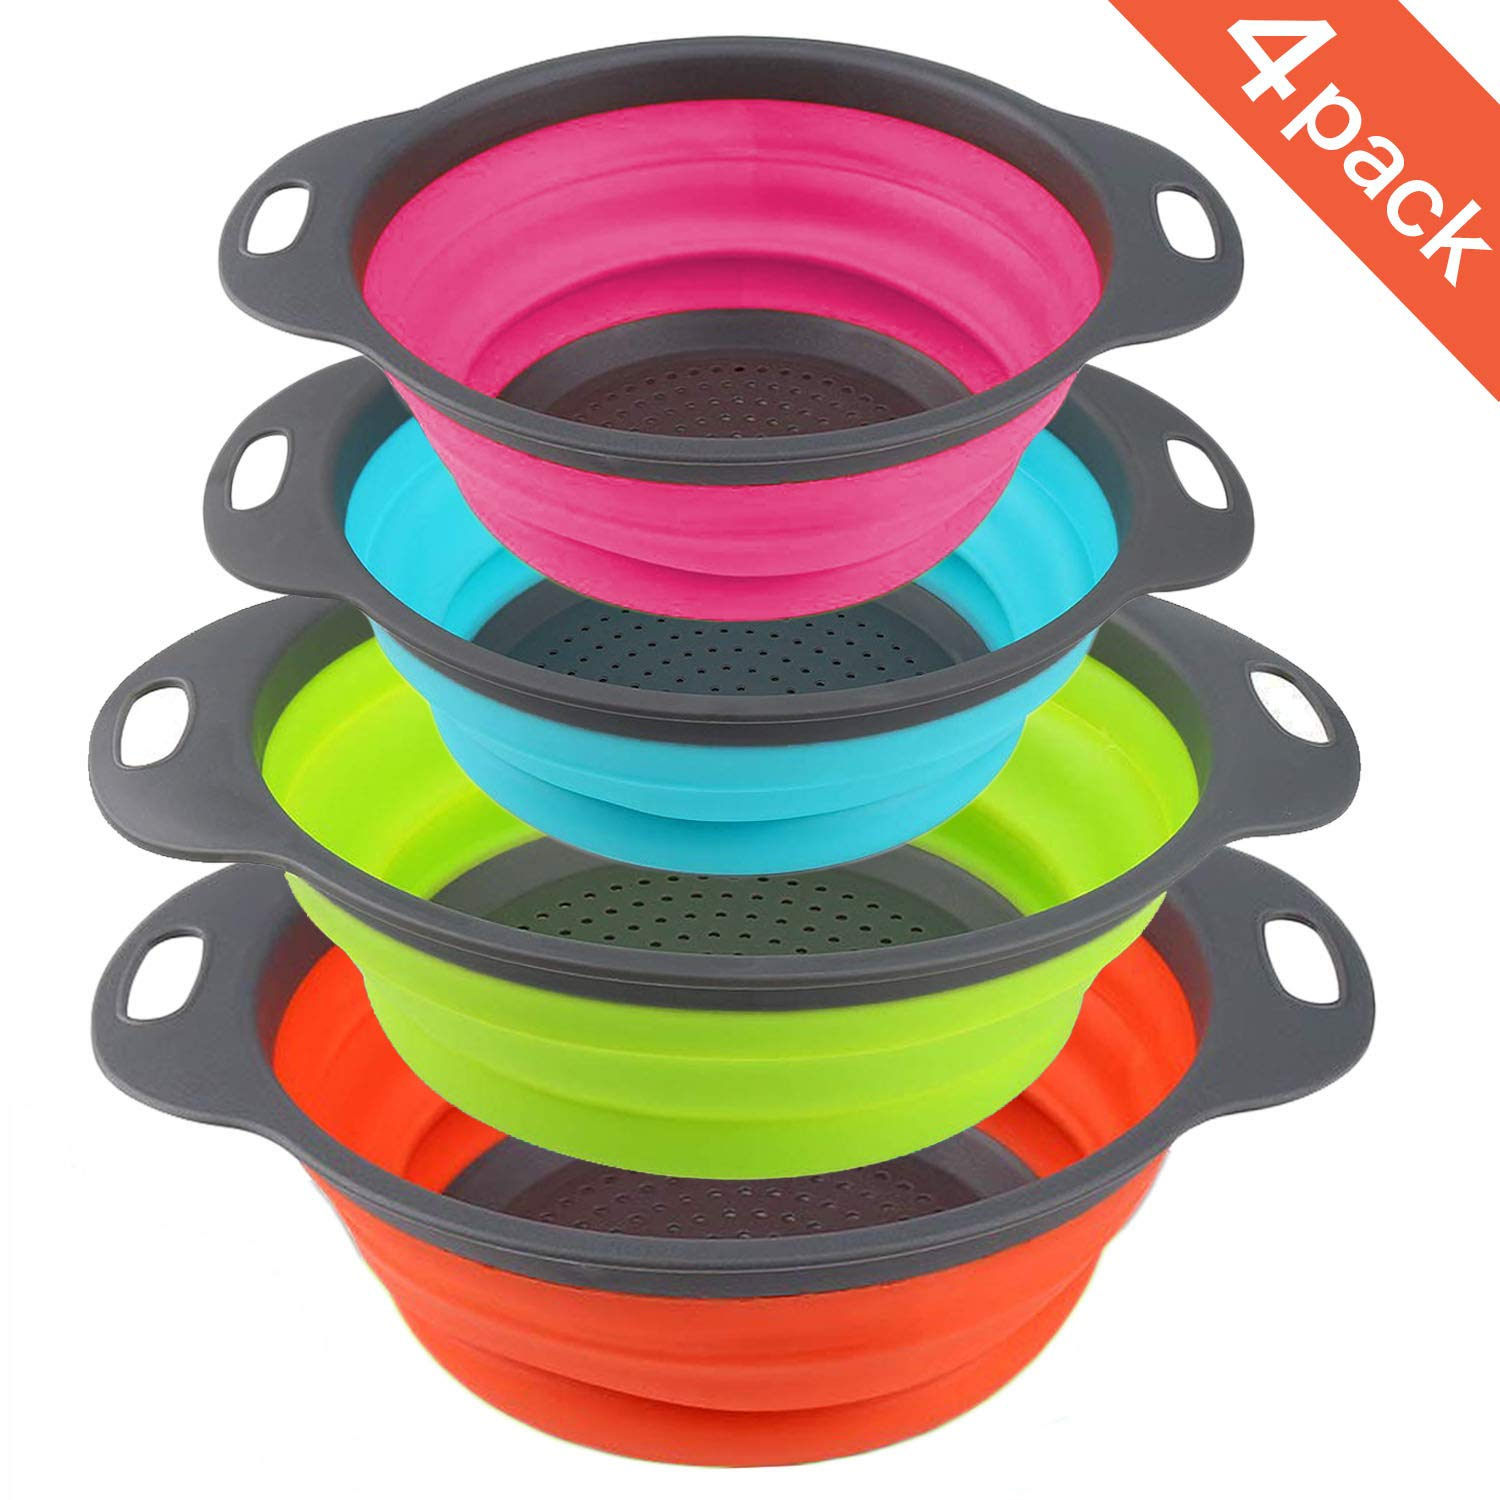 Farielyn-X Collapsible Colander Set of 4 Round Silicone Kitchen Strainer Set - 2 pcs 4 Quart and 2 pcs 2 Quart- Perfect for Draining Pasta, Vegetable and fruit (green, blue, orange, red)